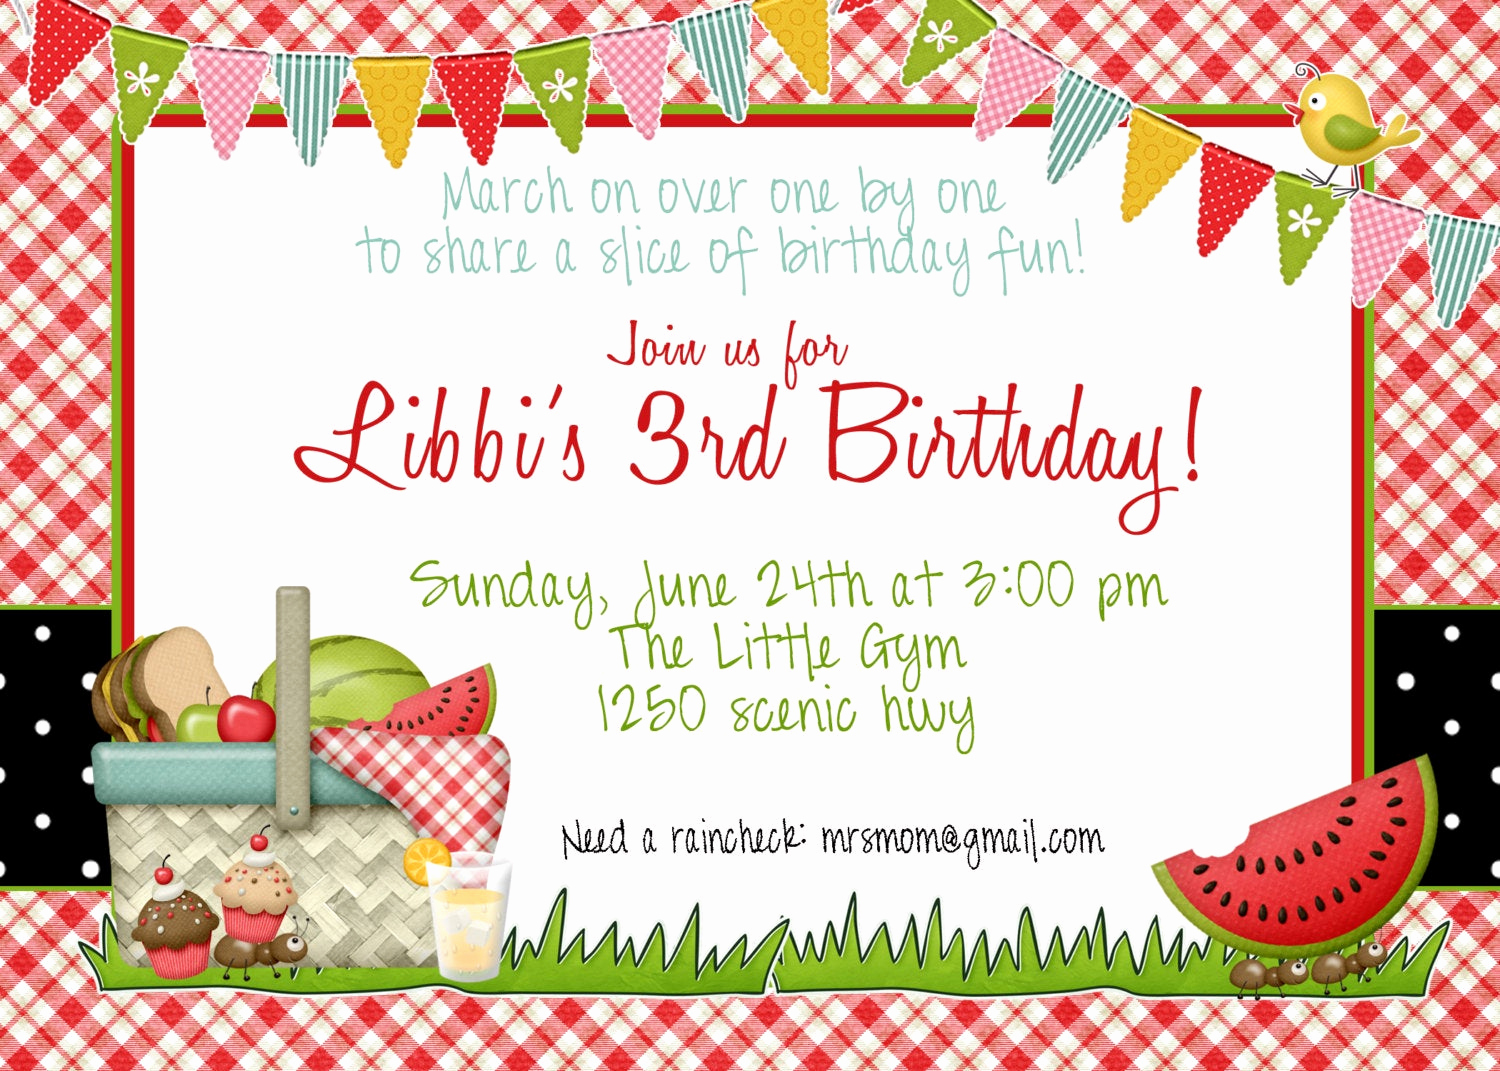 Picnic Invitation Templates Free Fresh Picnic Birthday Invitation by Greatgrabbiedesigns On Etsy